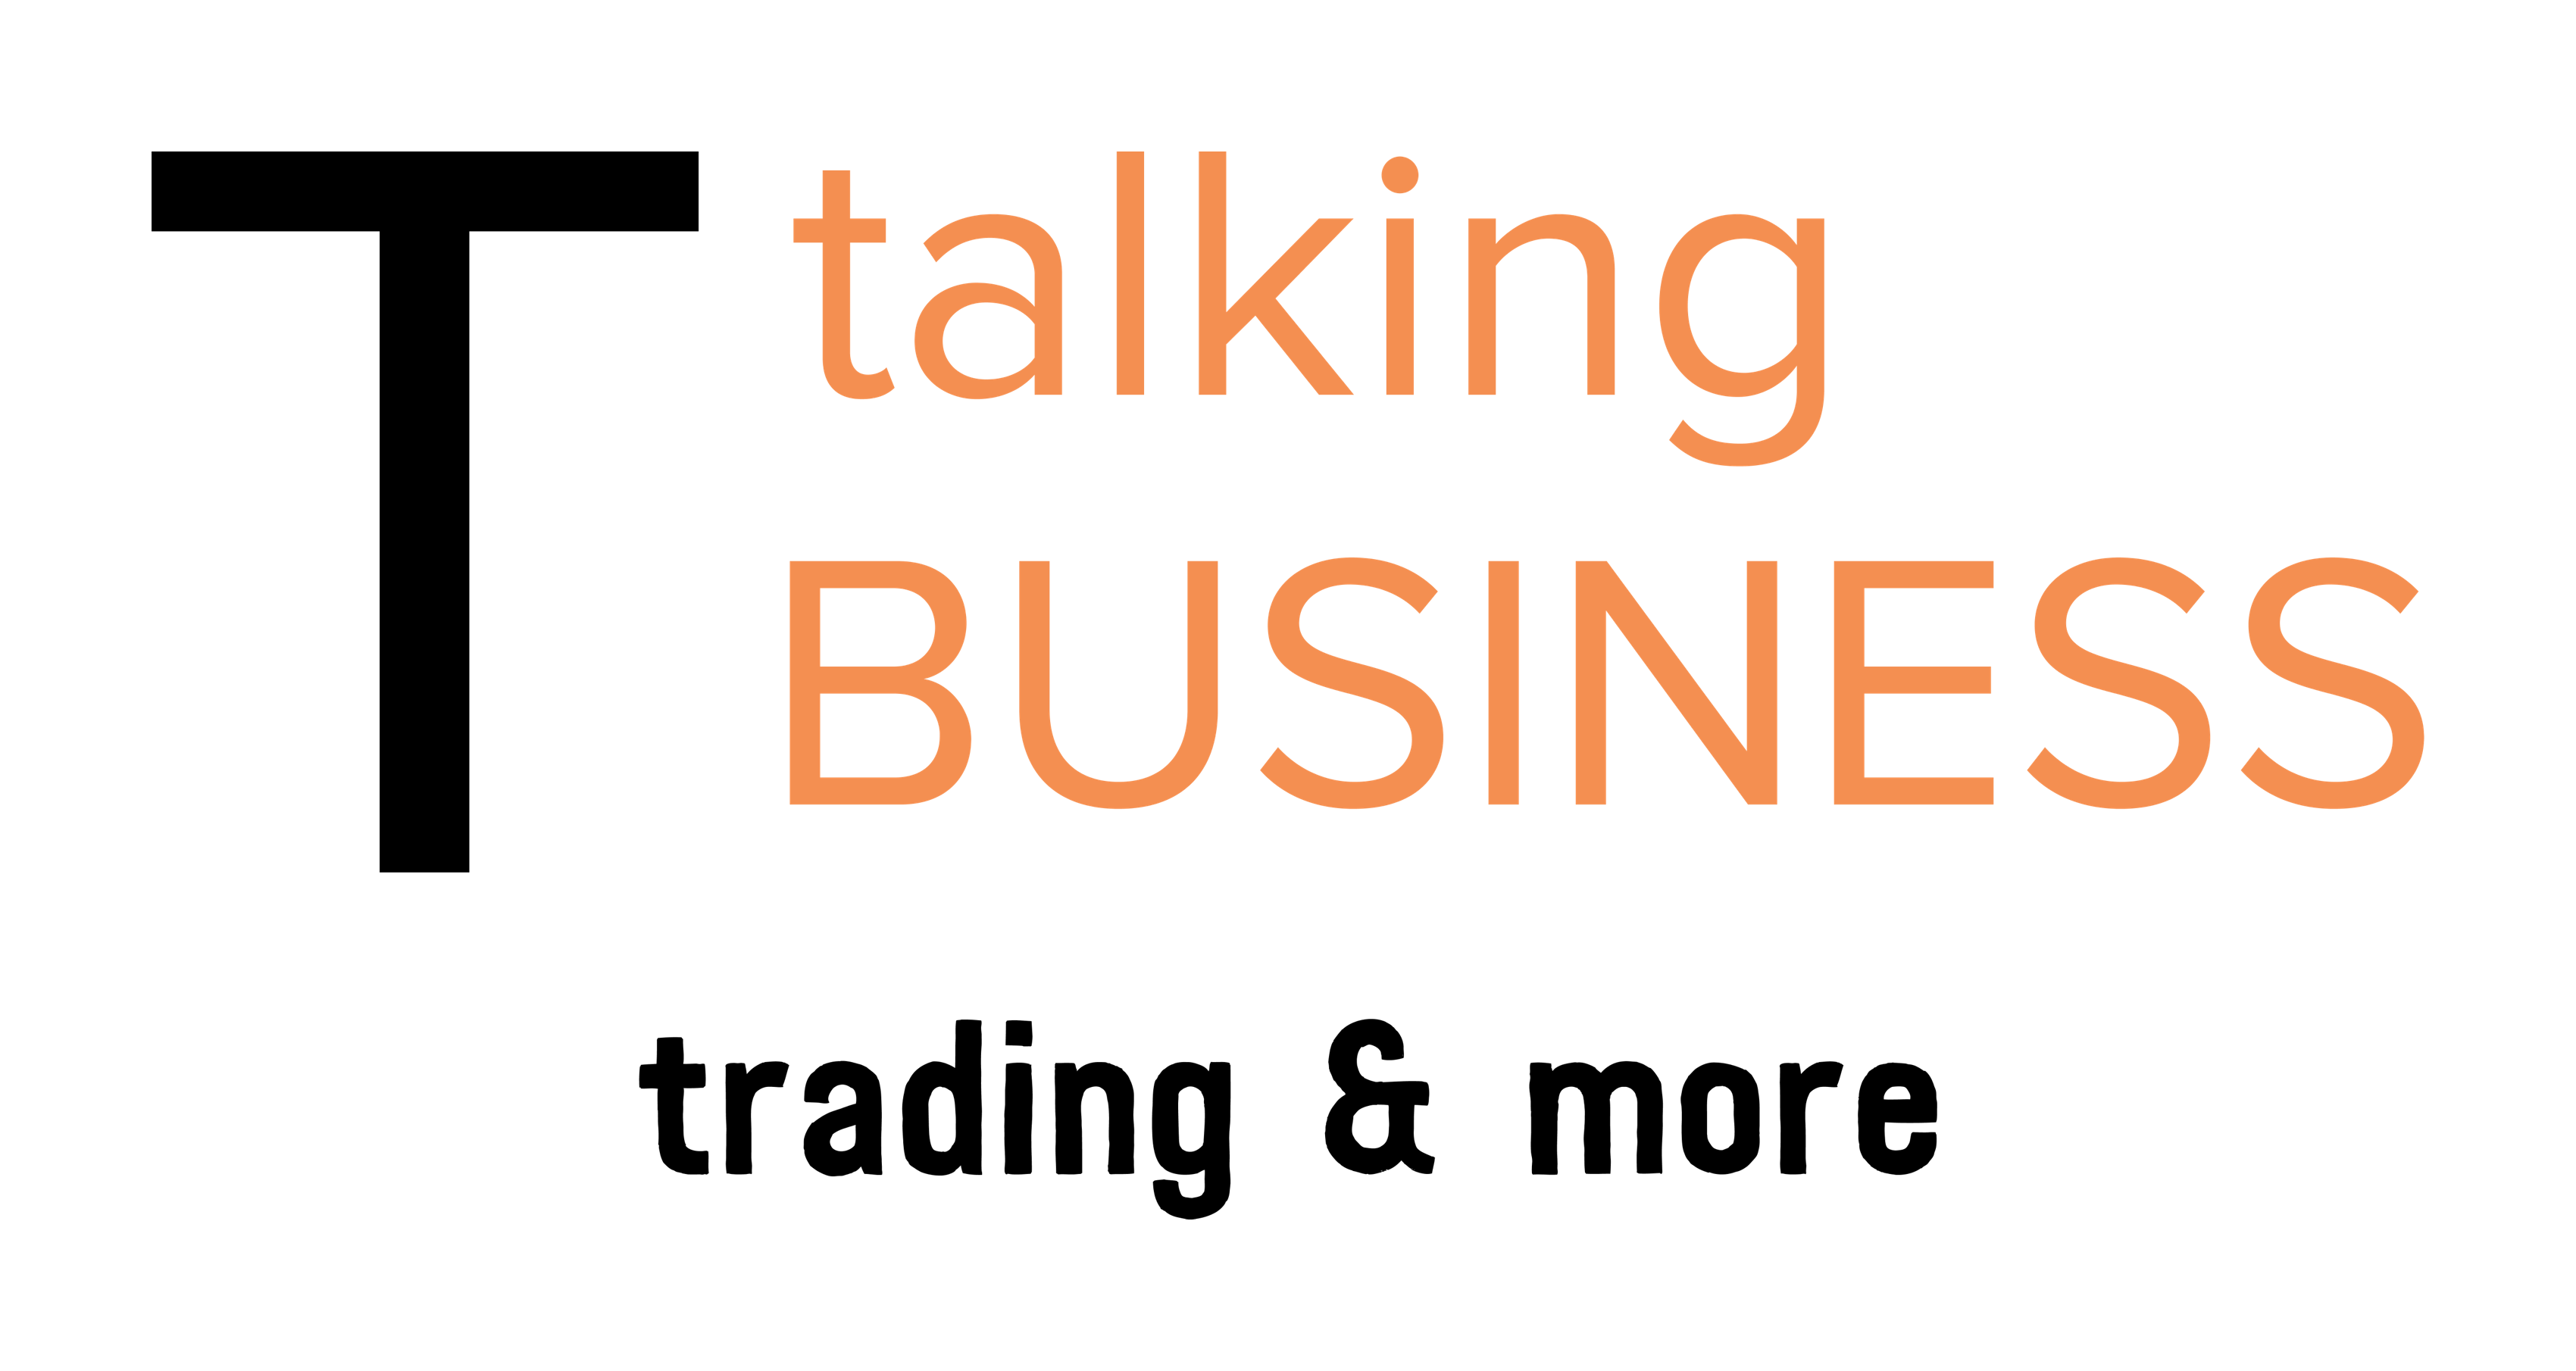 talkingBusiness - trading & more